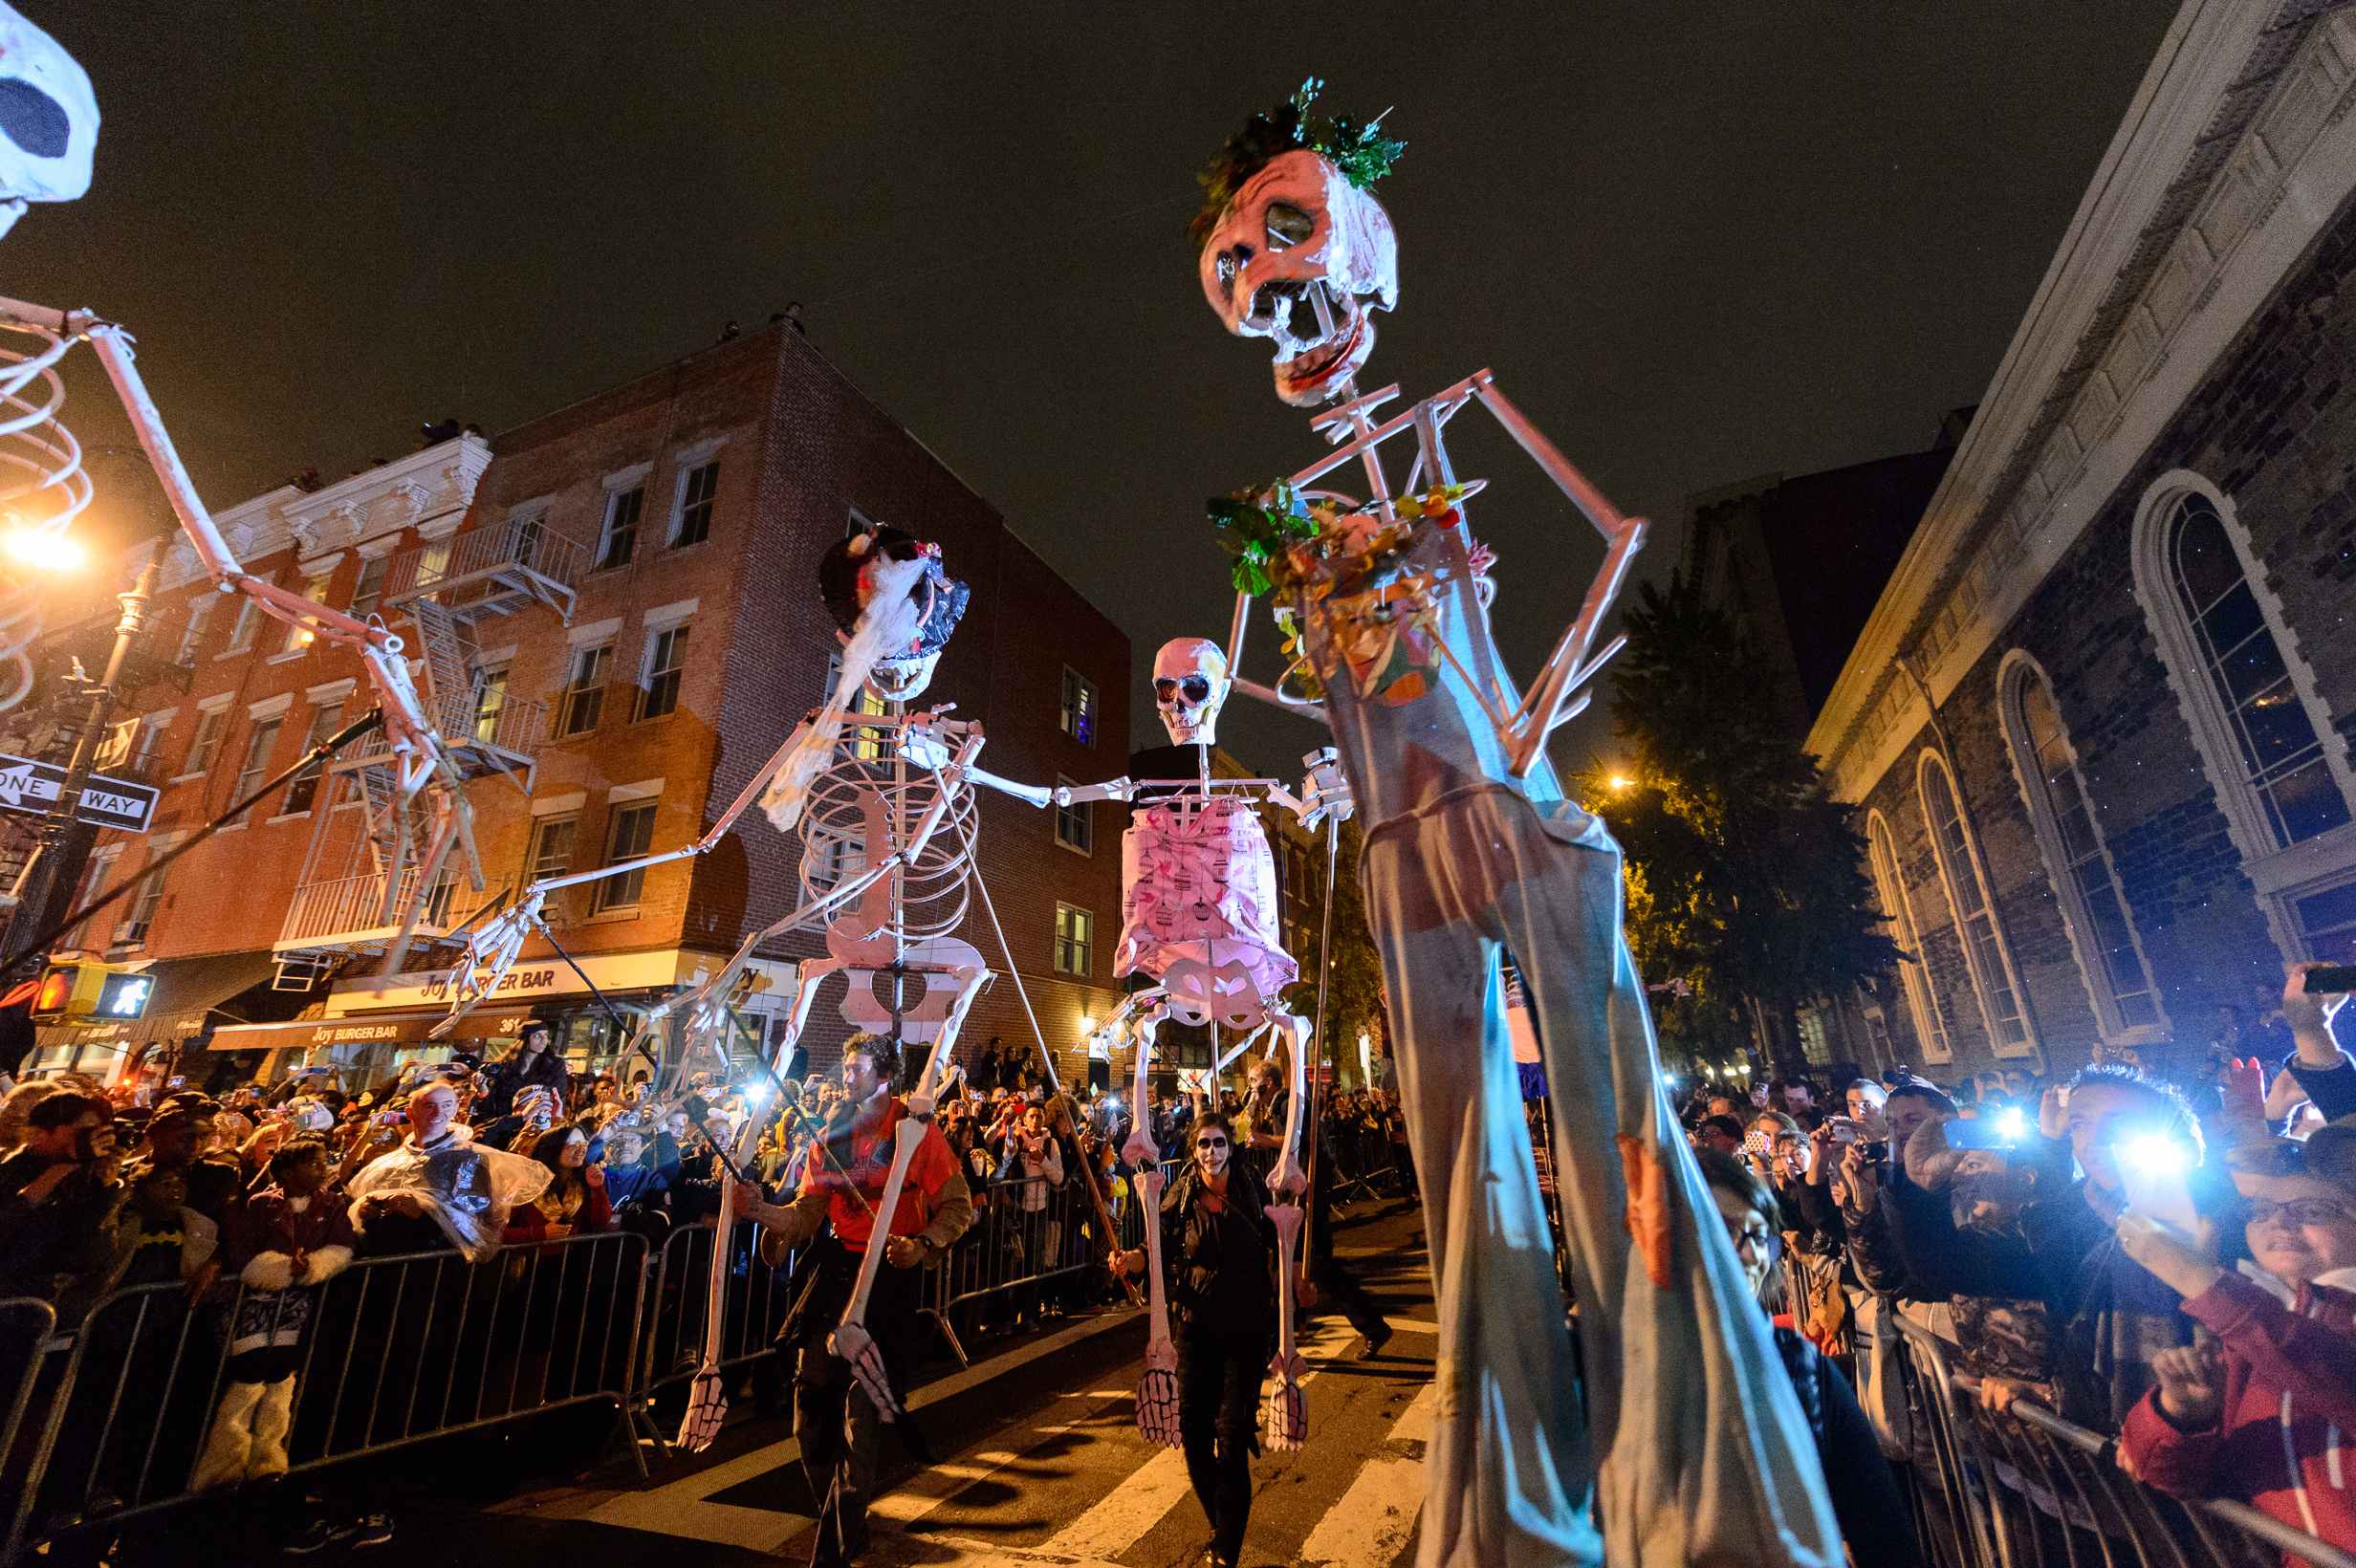 Your survival guide for the Village Halloween Parade